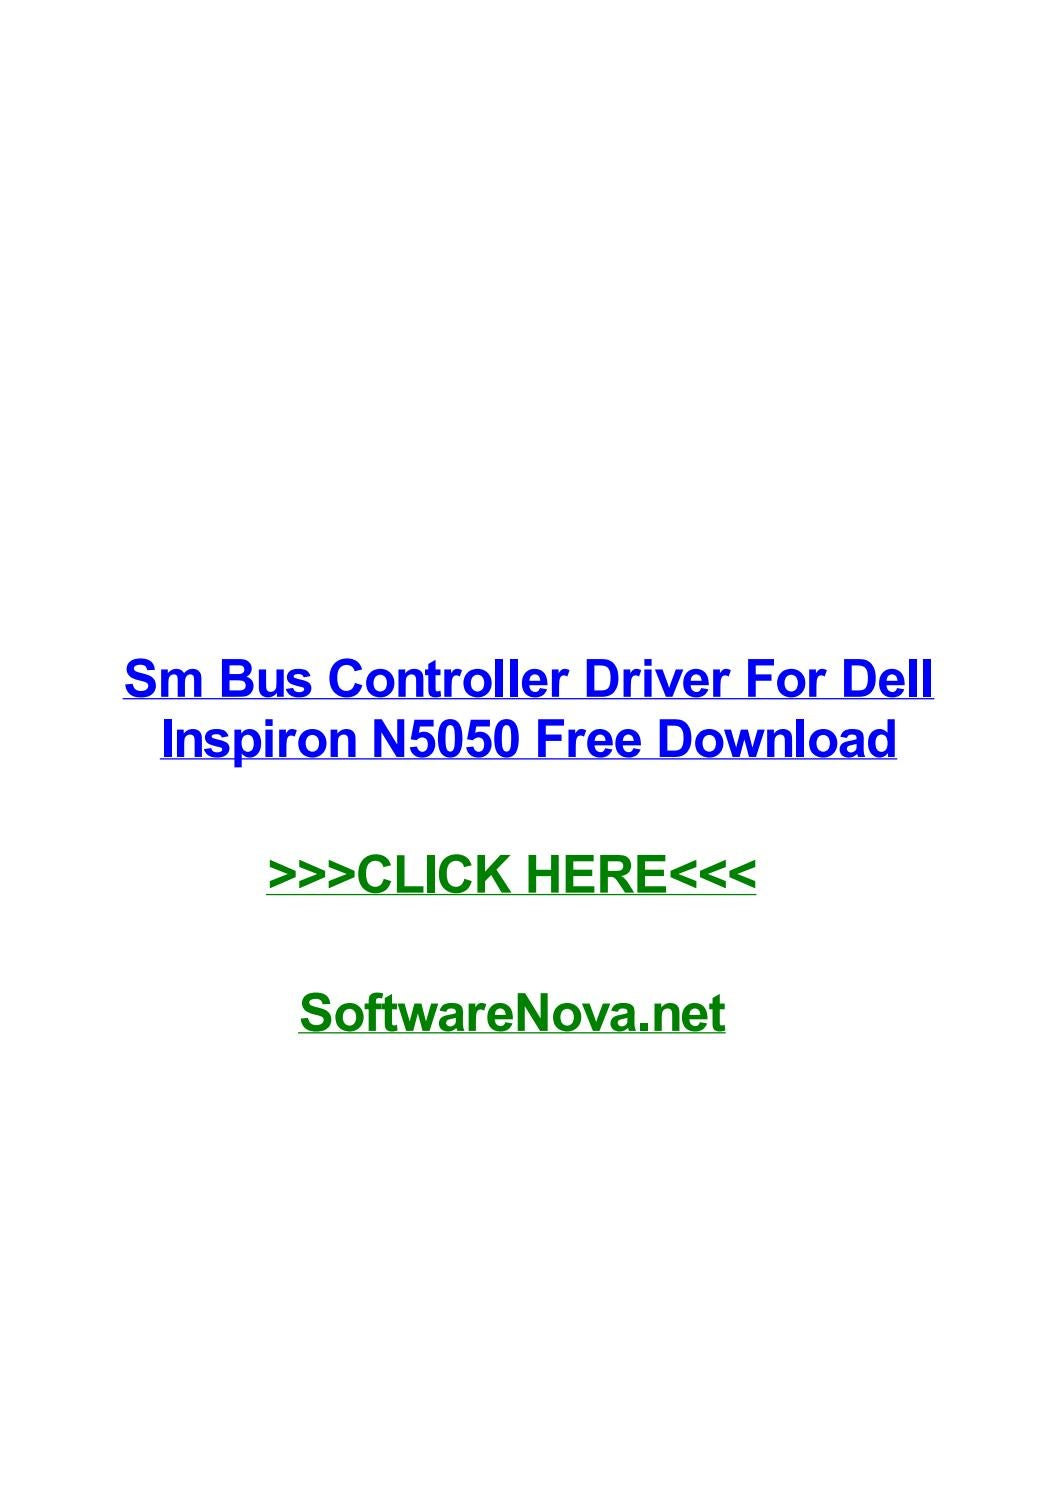 dell inspiron n5050 web camera drivers for windows 7 64 bit